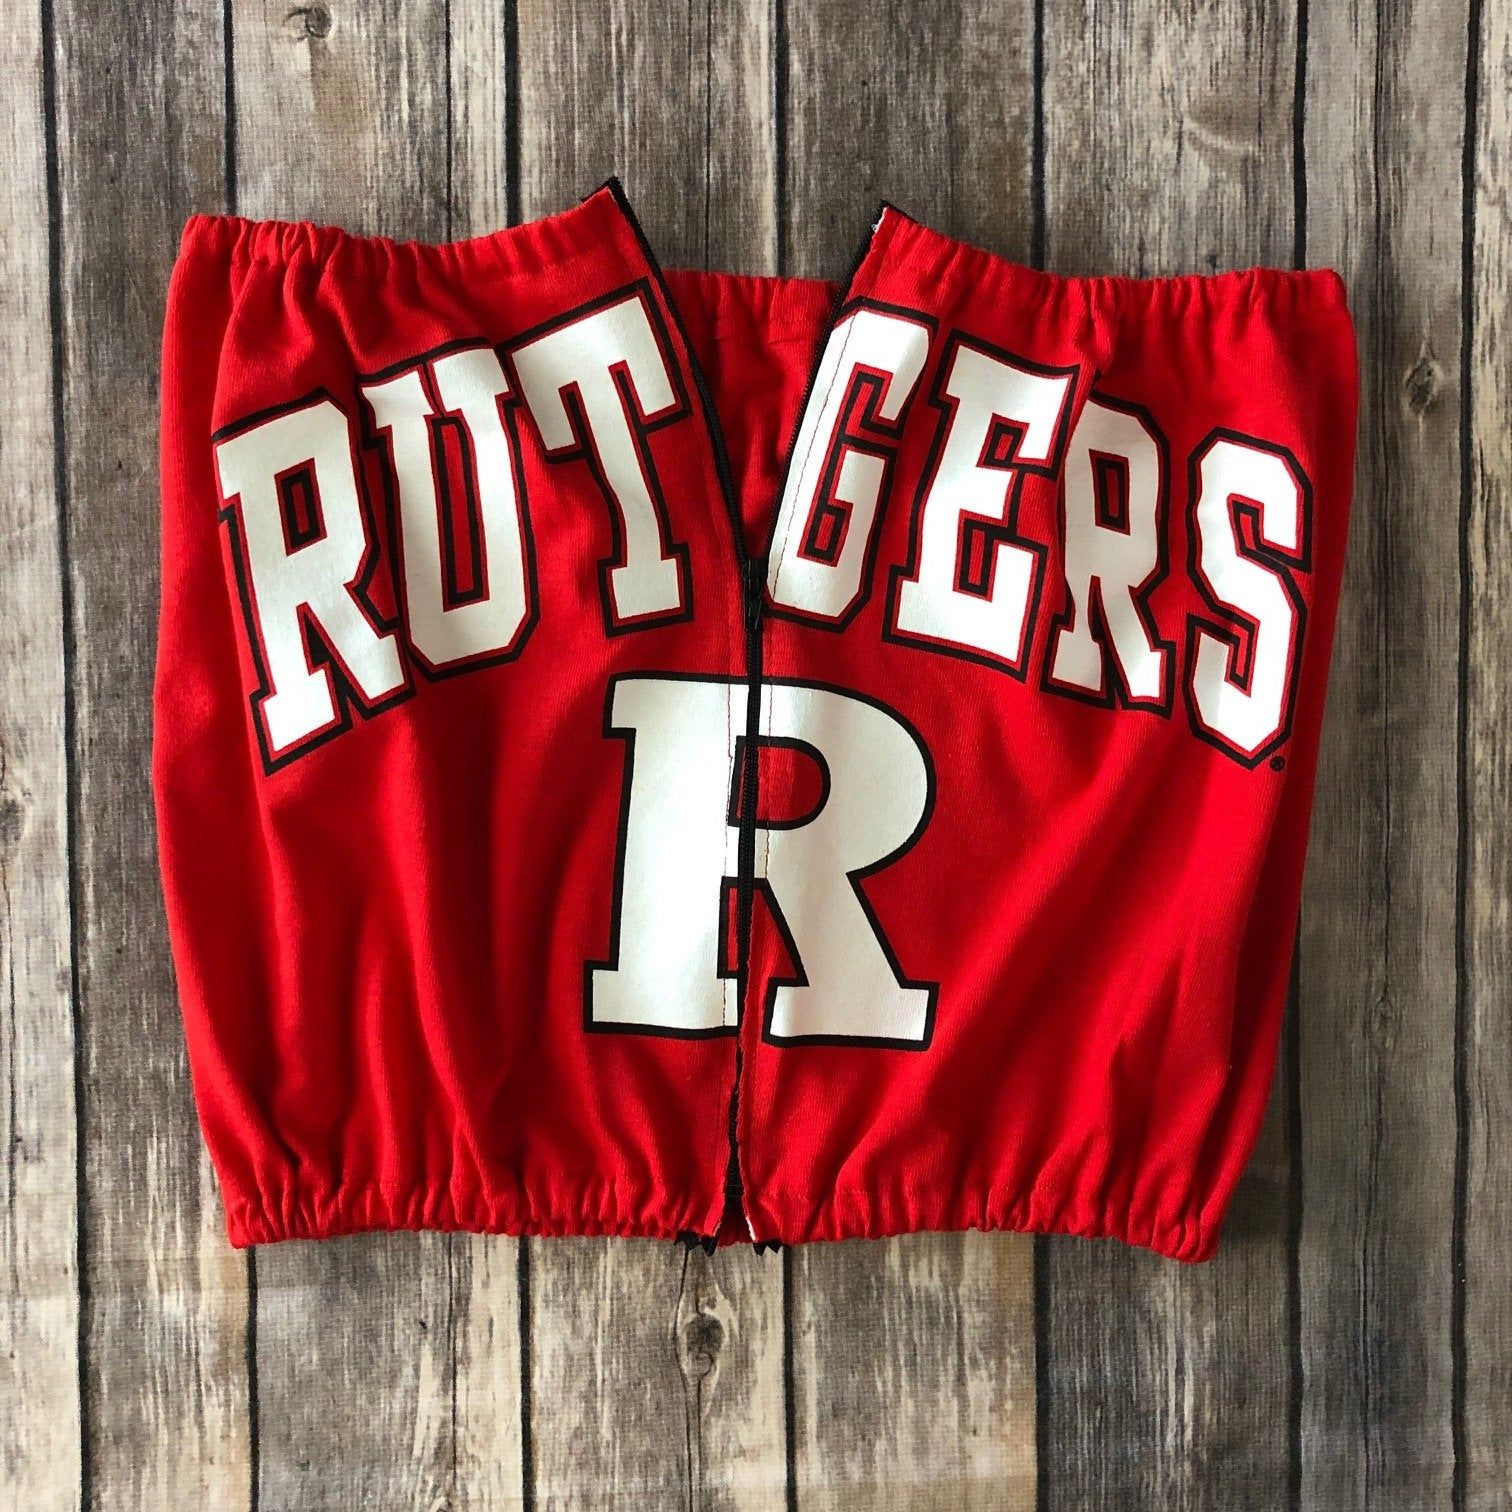 Sample Sale Rutgers Scarlet Knights Zipper Tube Top Womens Tailgate Shirt Cute Game Day Top College Tube Tailgate Shirt Gameday Outfit Tailgate Outfit